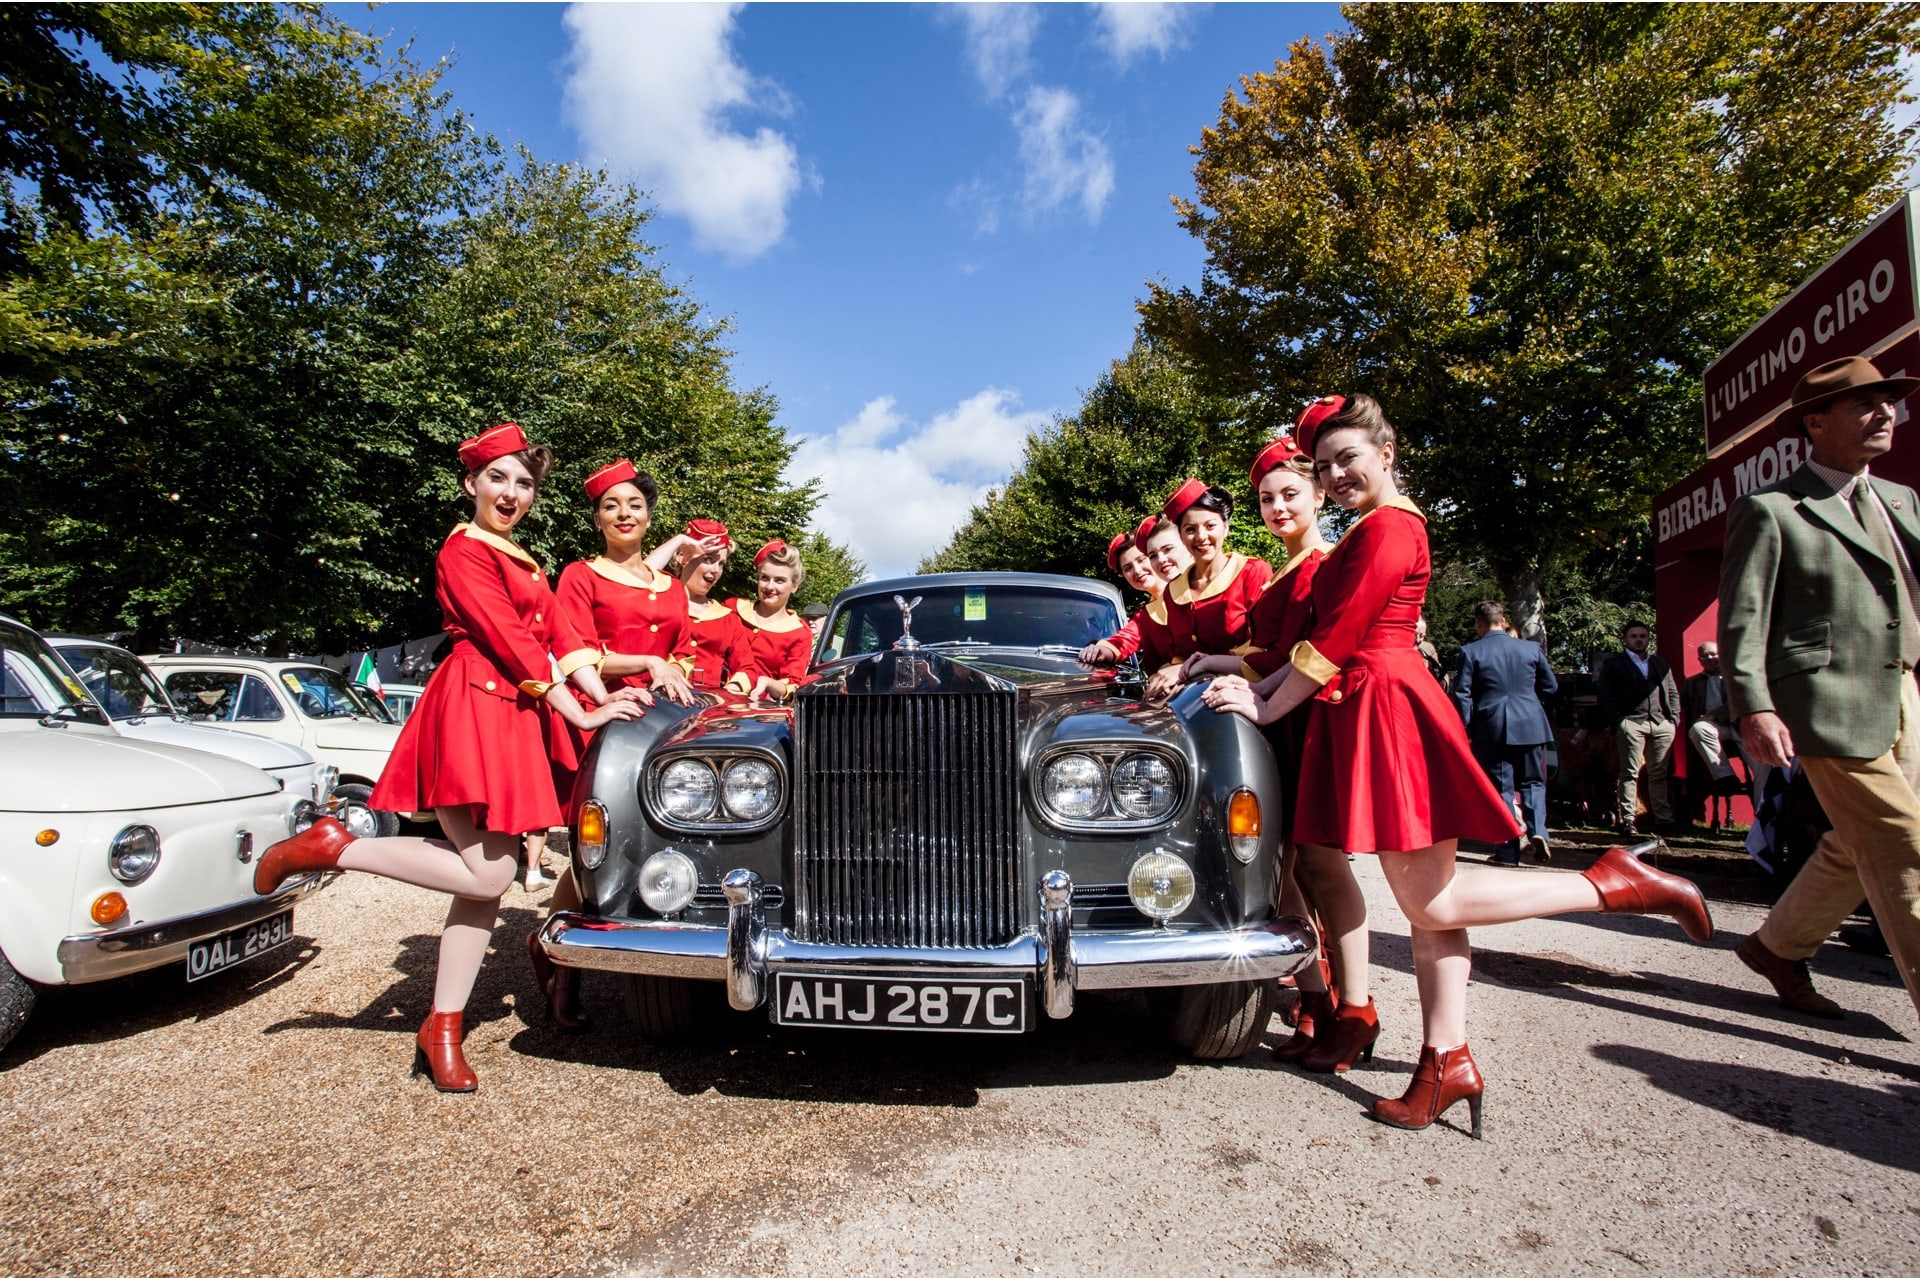 Enthusiasts clad in the fashion of bygone eras at the Rolls-Royce Goodwood Revival experience.